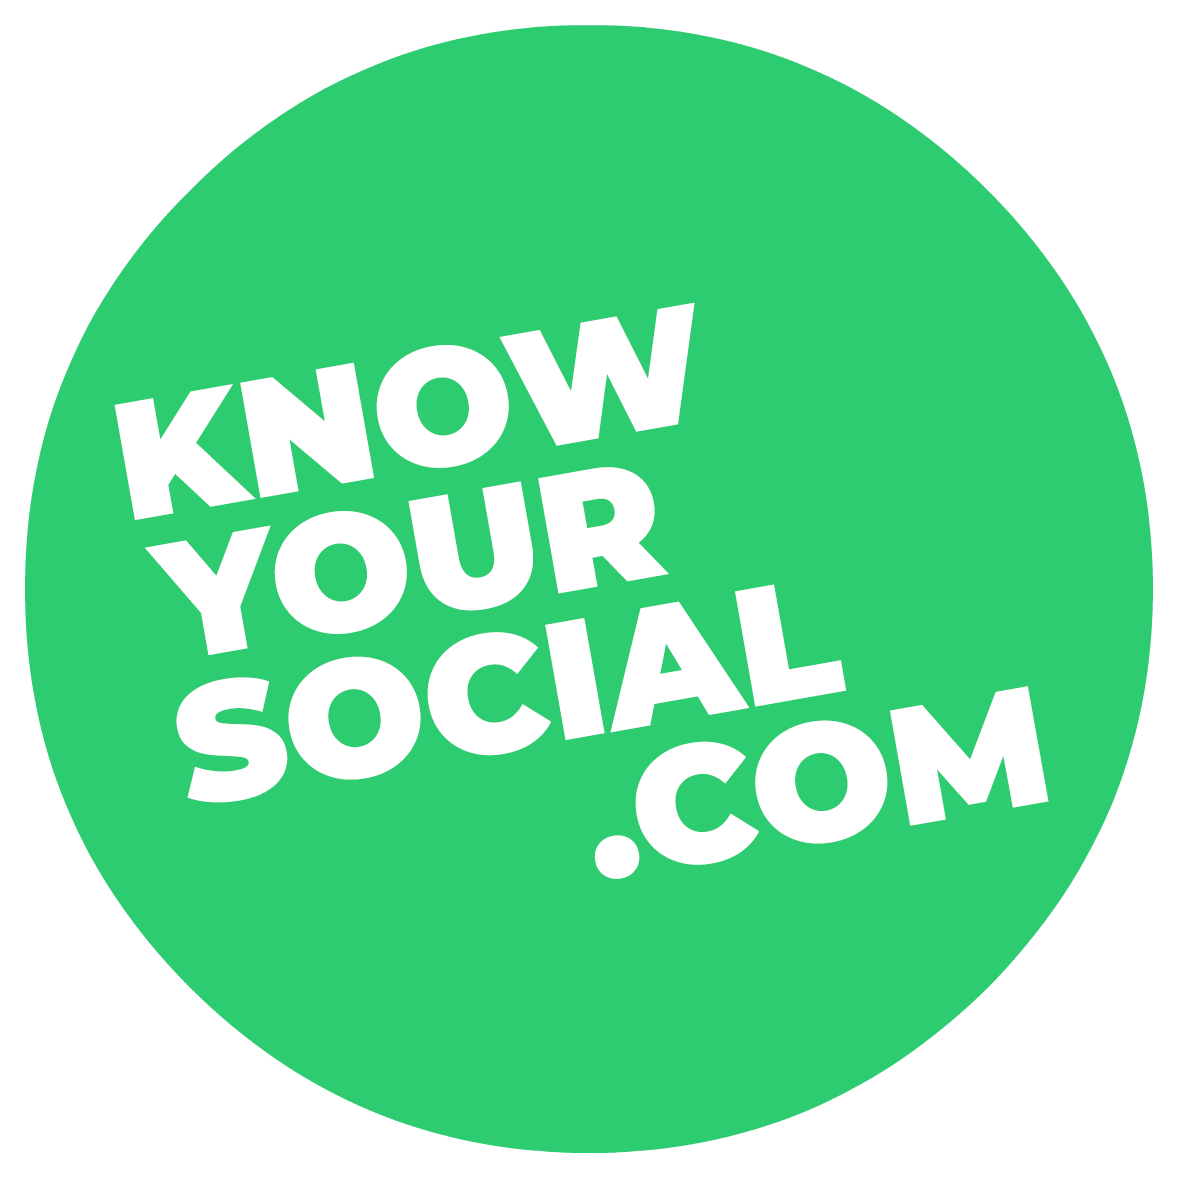 Know your social